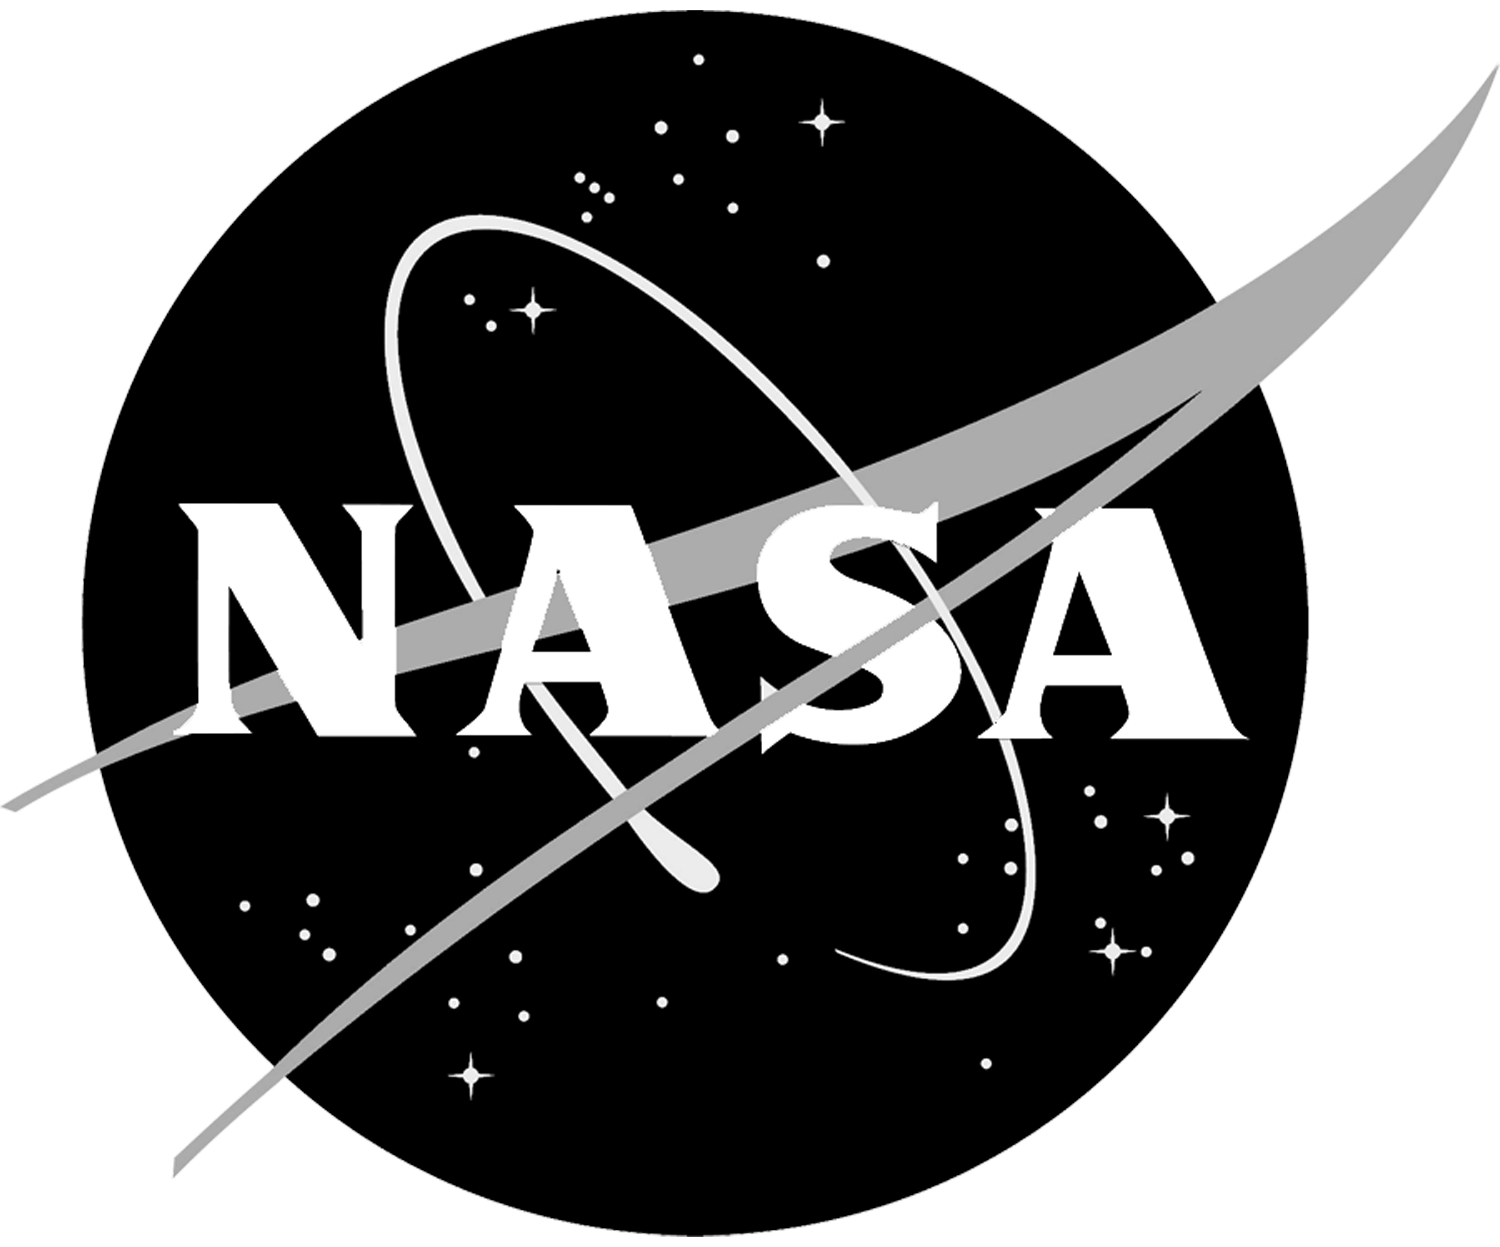 Nasa Logo download